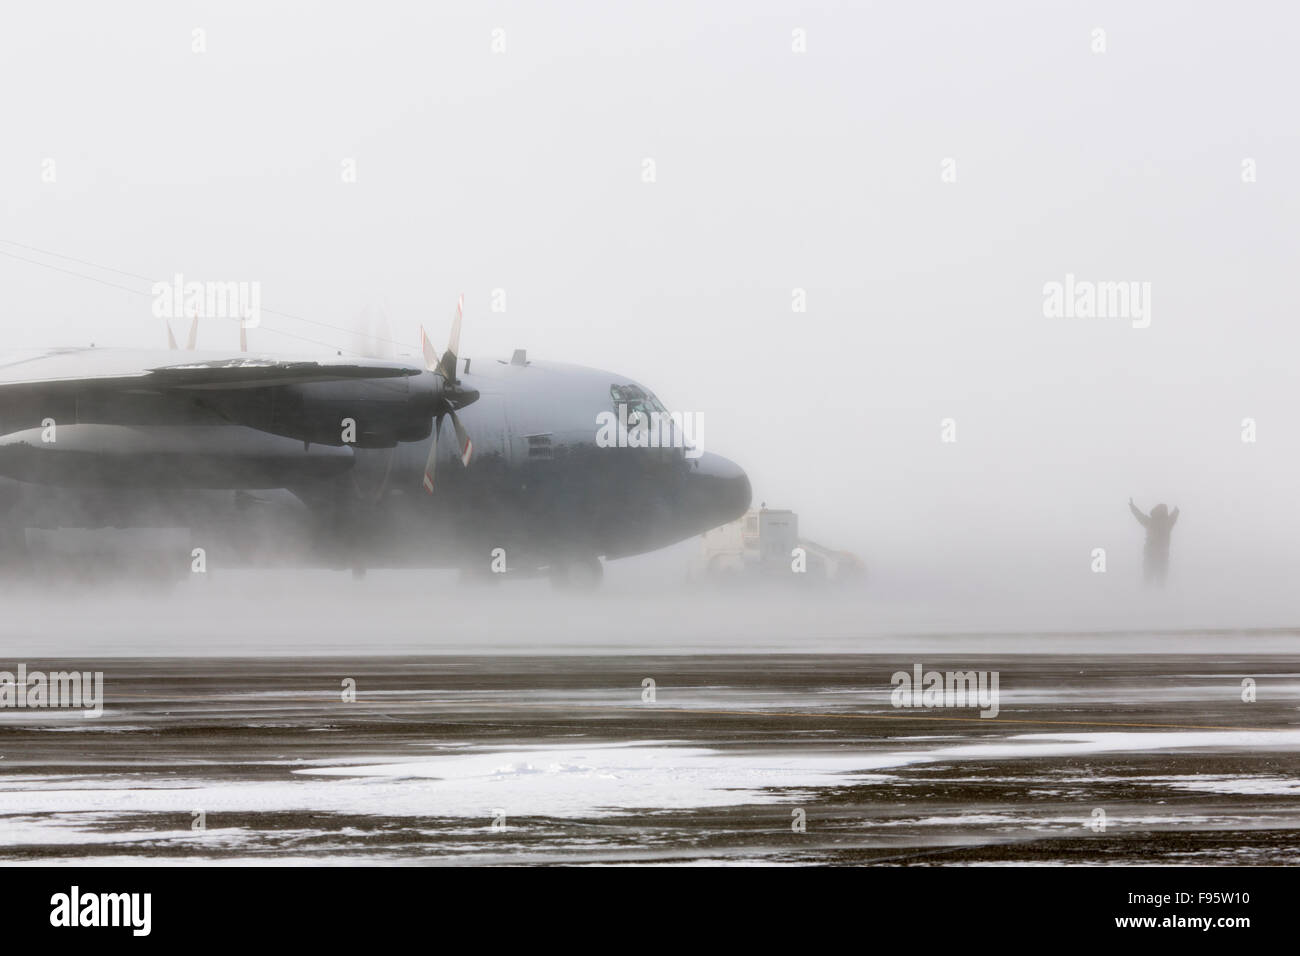 A Royal Canadian Air Force Lockheed Hercules aircraft in a blizzard in Iqaluit, Nunavut, Canada Stock Photo